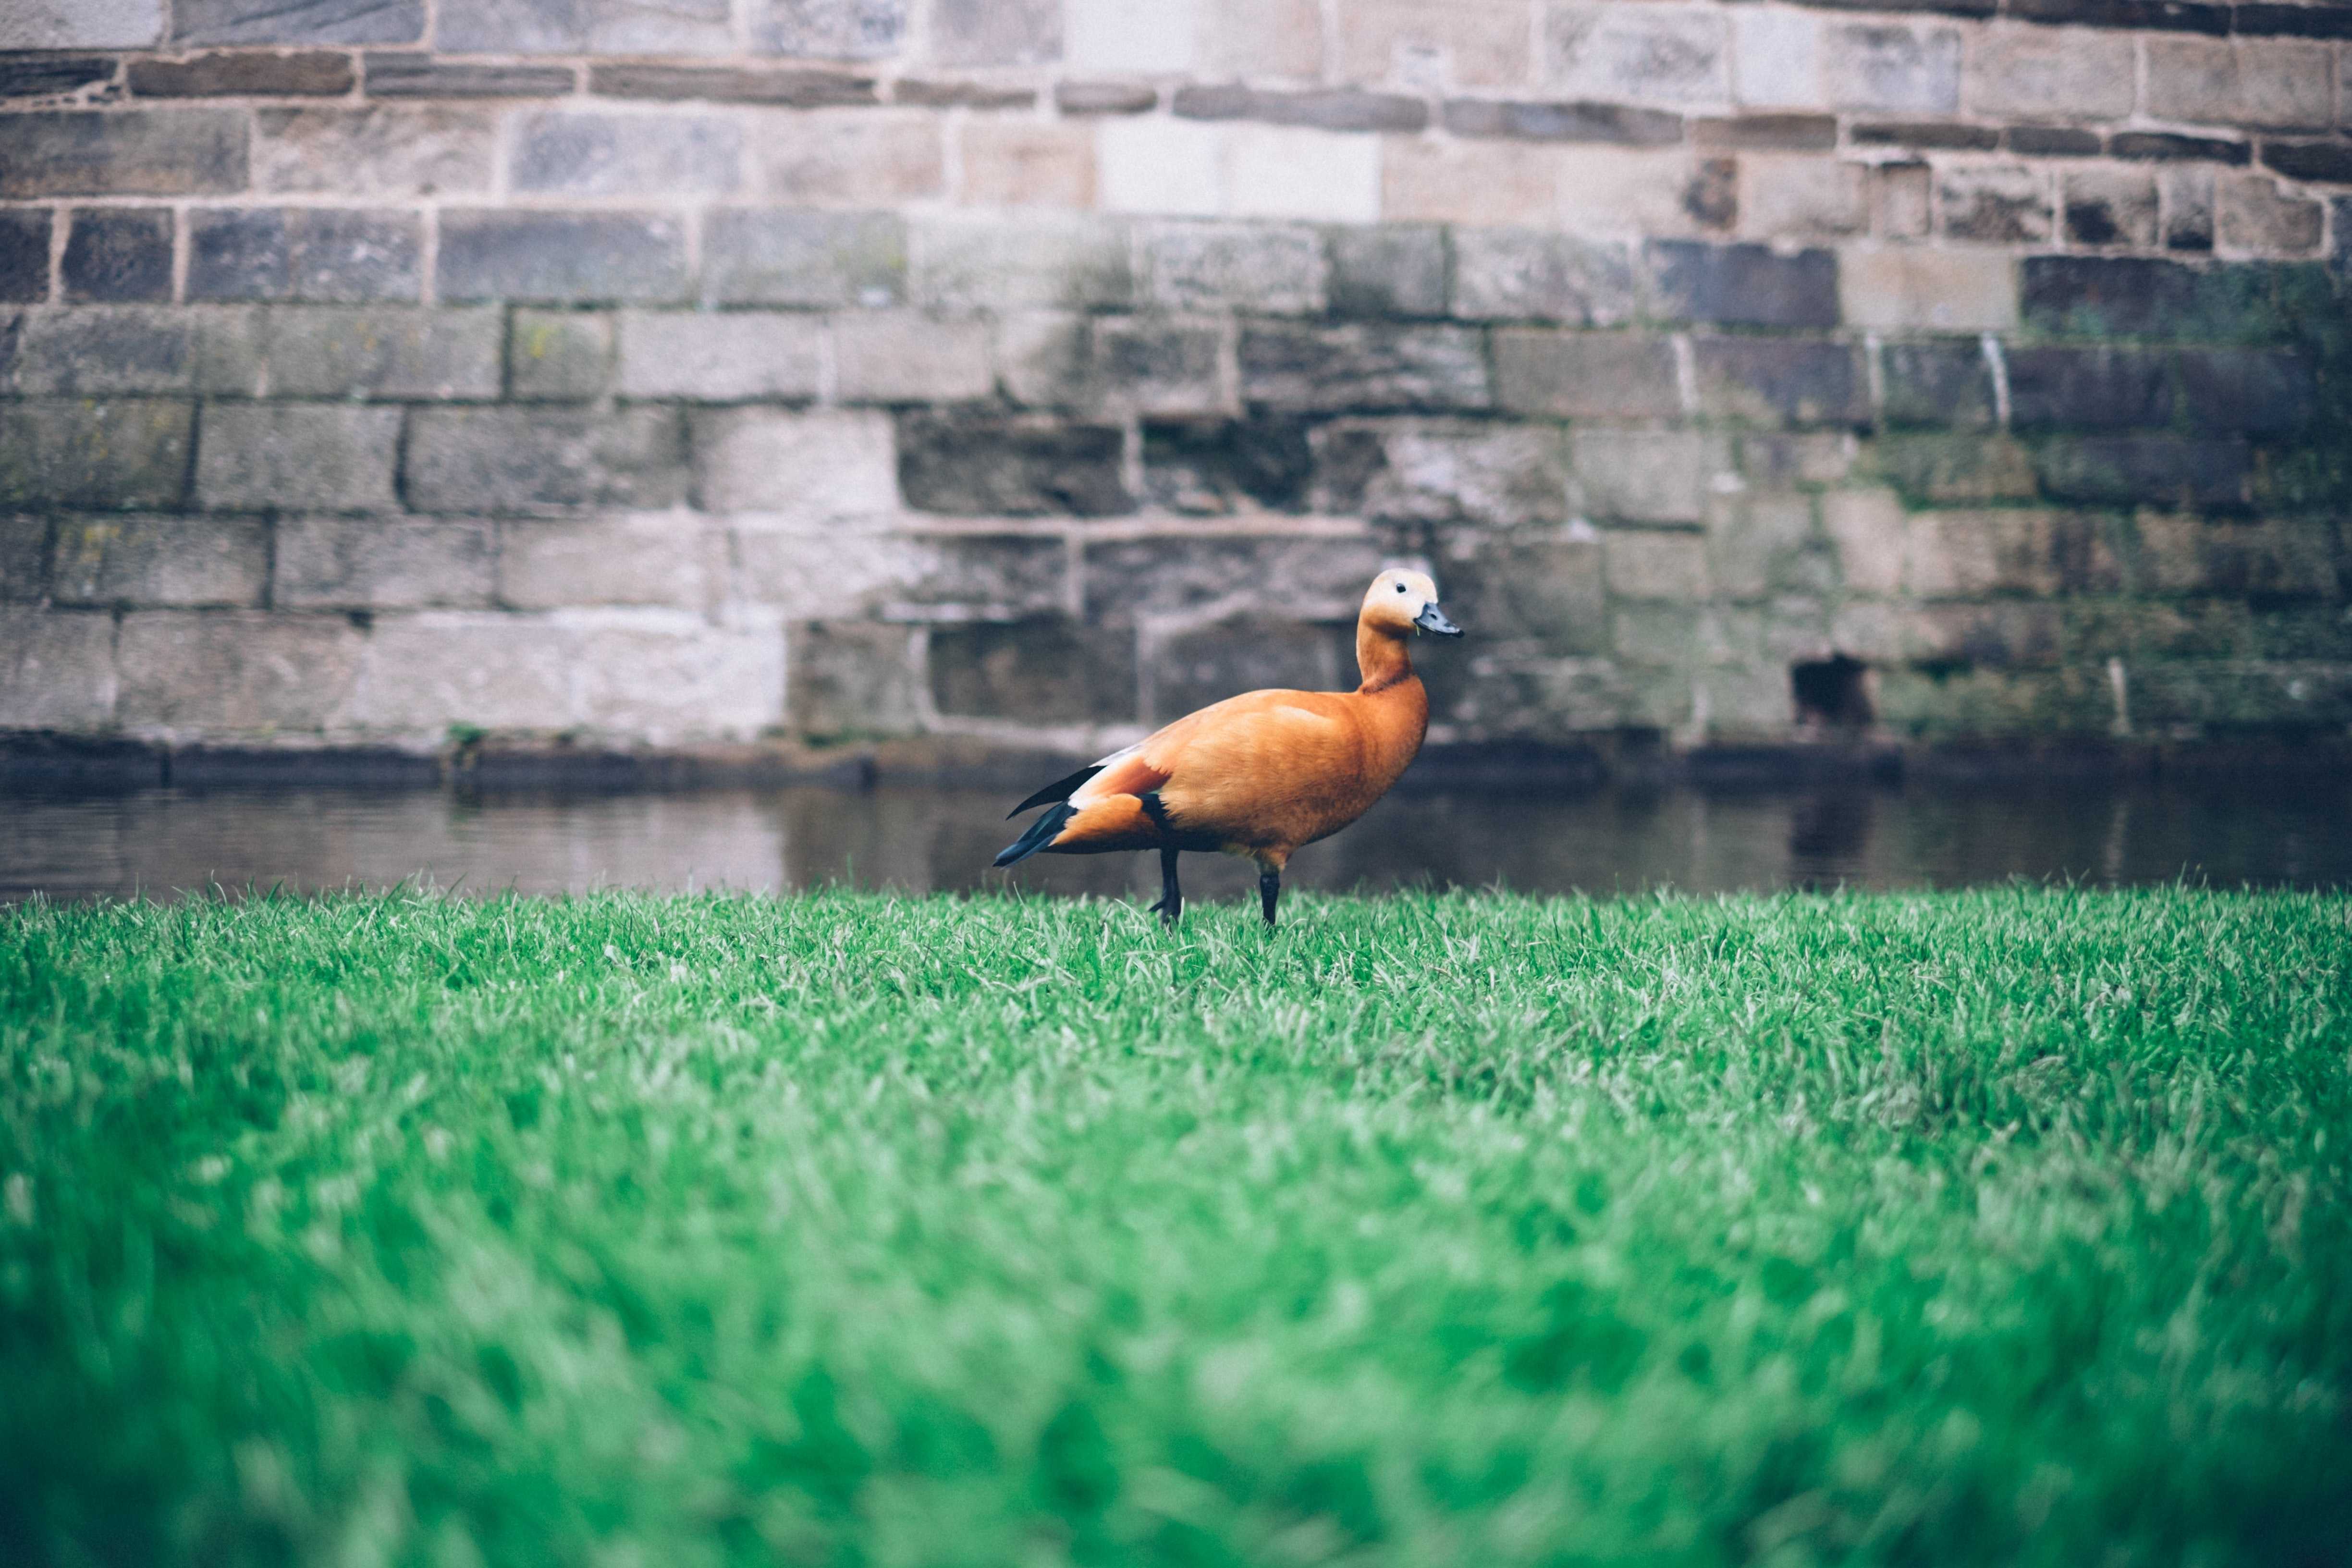 An orange duck with a black beak walking on cut grass in front of a moat and a stone wall